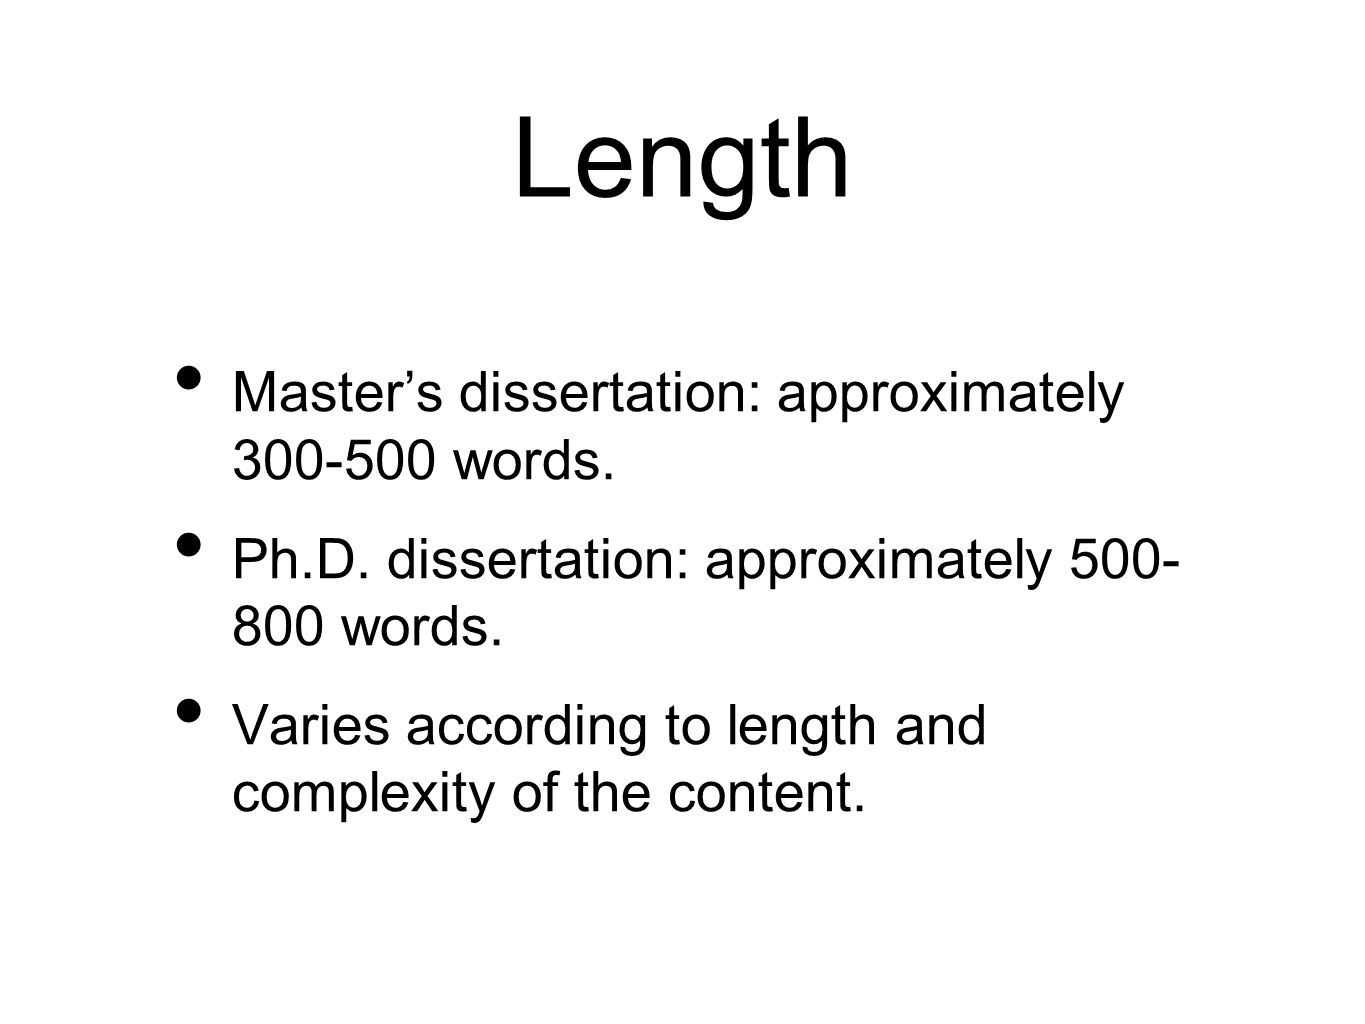 Average masters thesis length